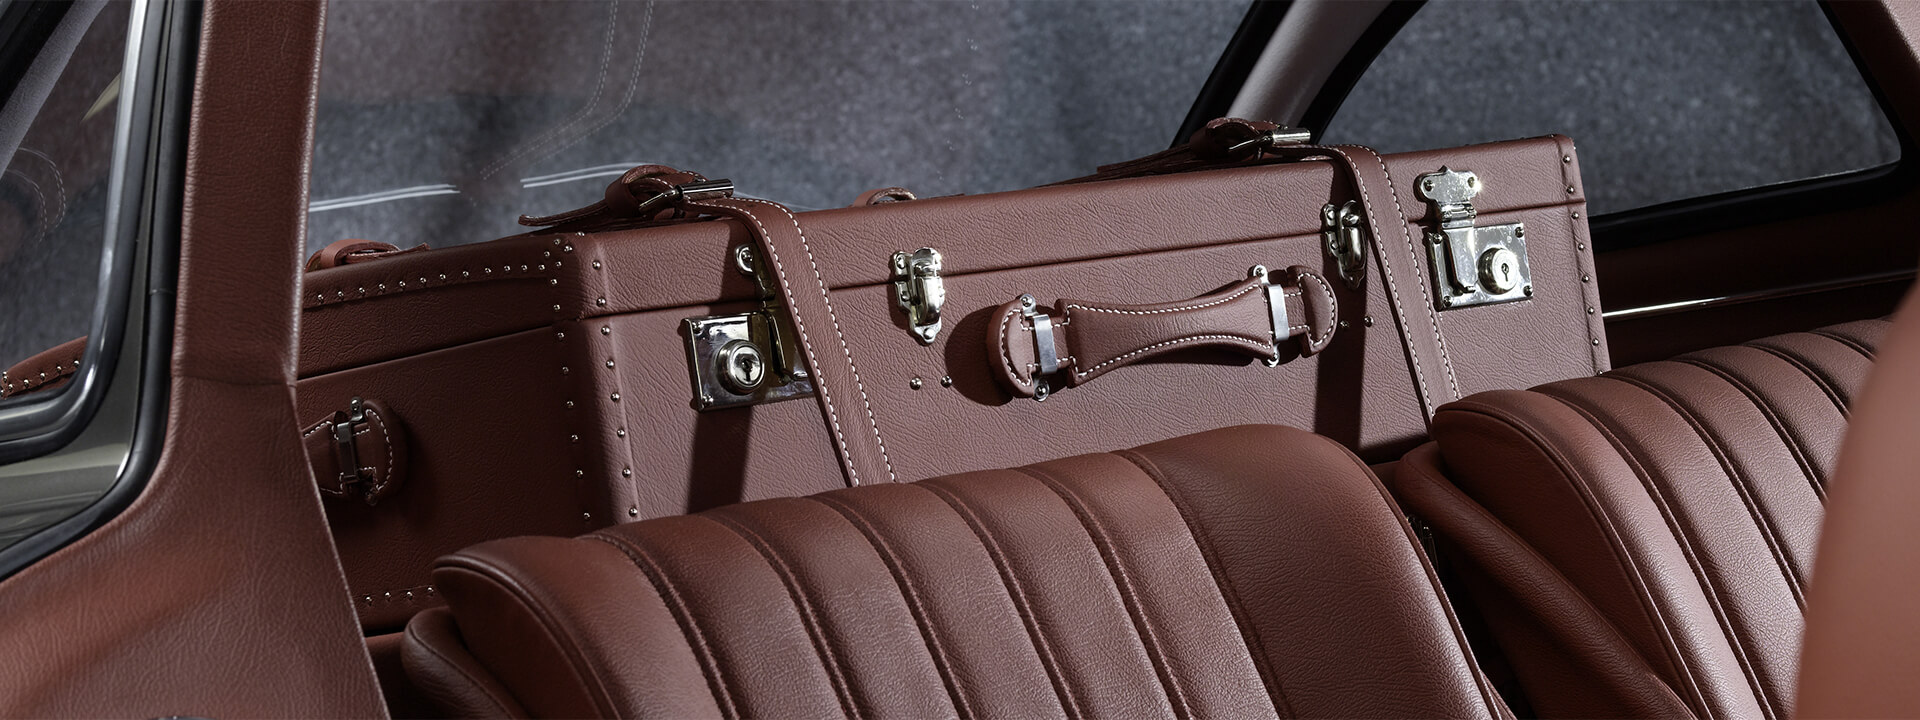 Mercedes 300 SL interior and luggage compartment